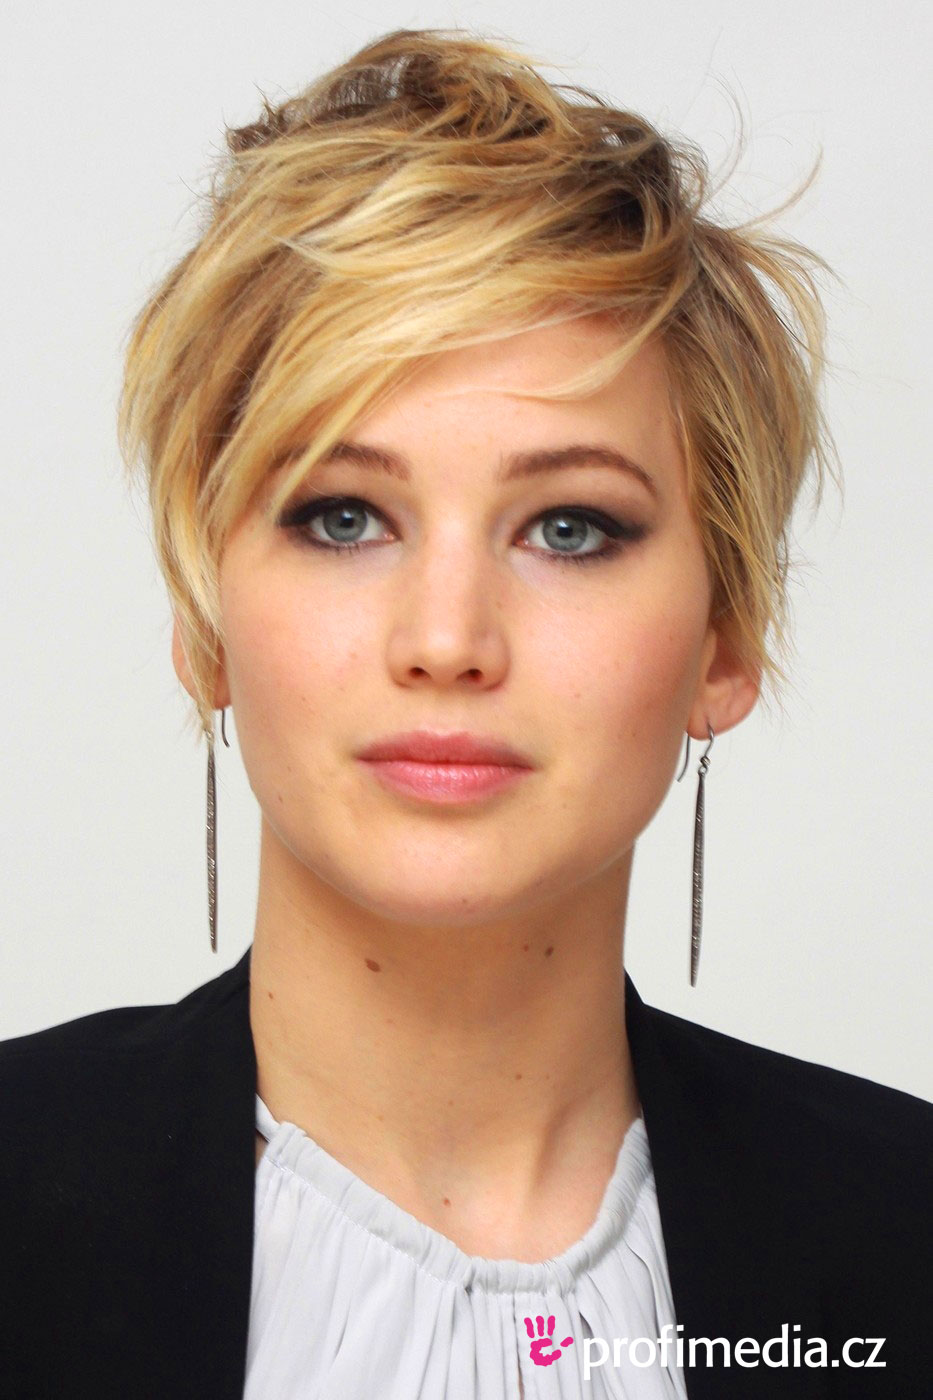 Účes celebrity - jennifer lawrence - jennifer lawrence